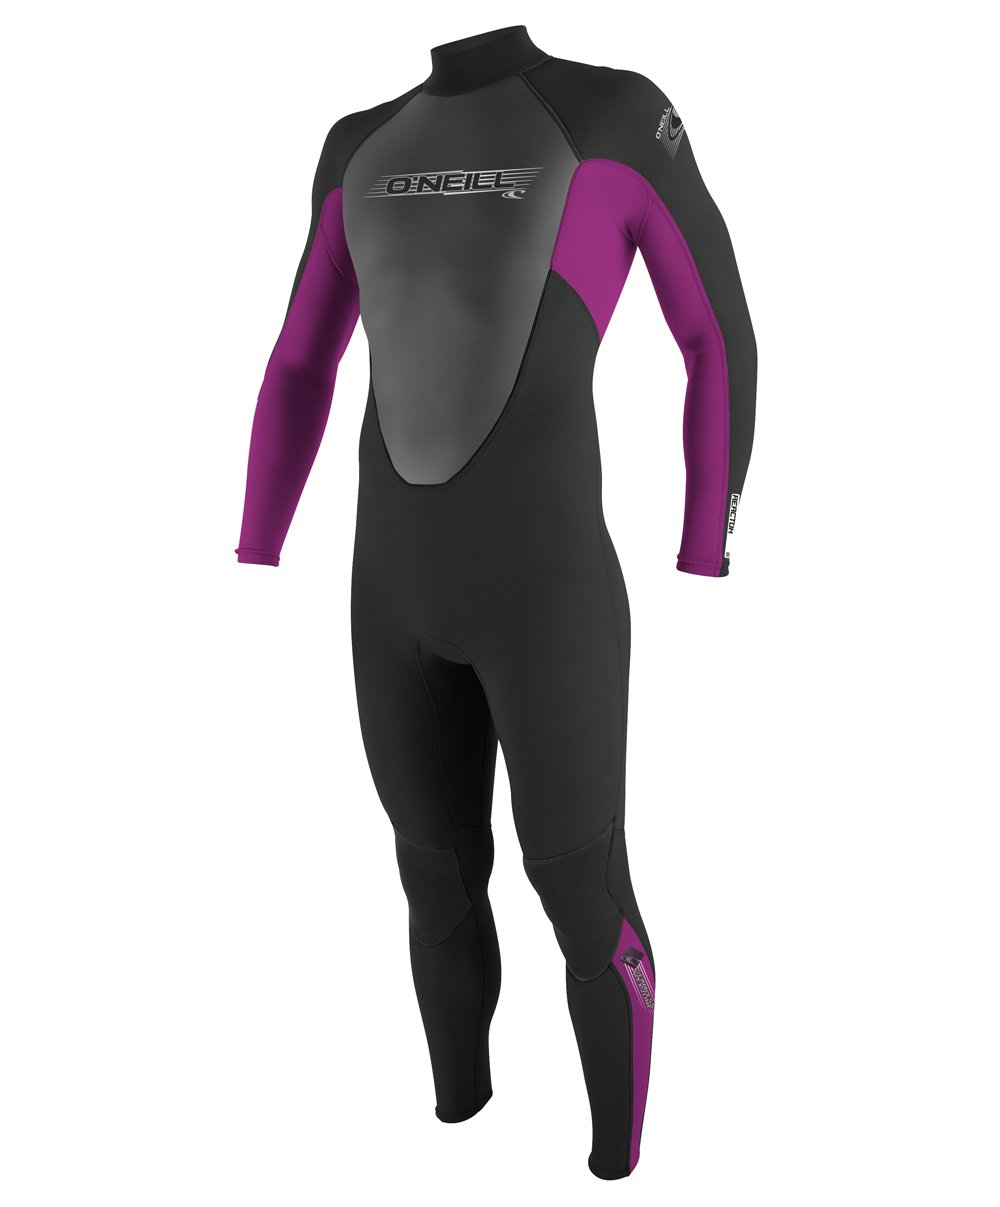 O'Neill Youth Reactor 3/2mm Back Zip Full Wetsuit, Black/Pink/Graphite, 8 by O'Neill Wetsuits (Image #1)